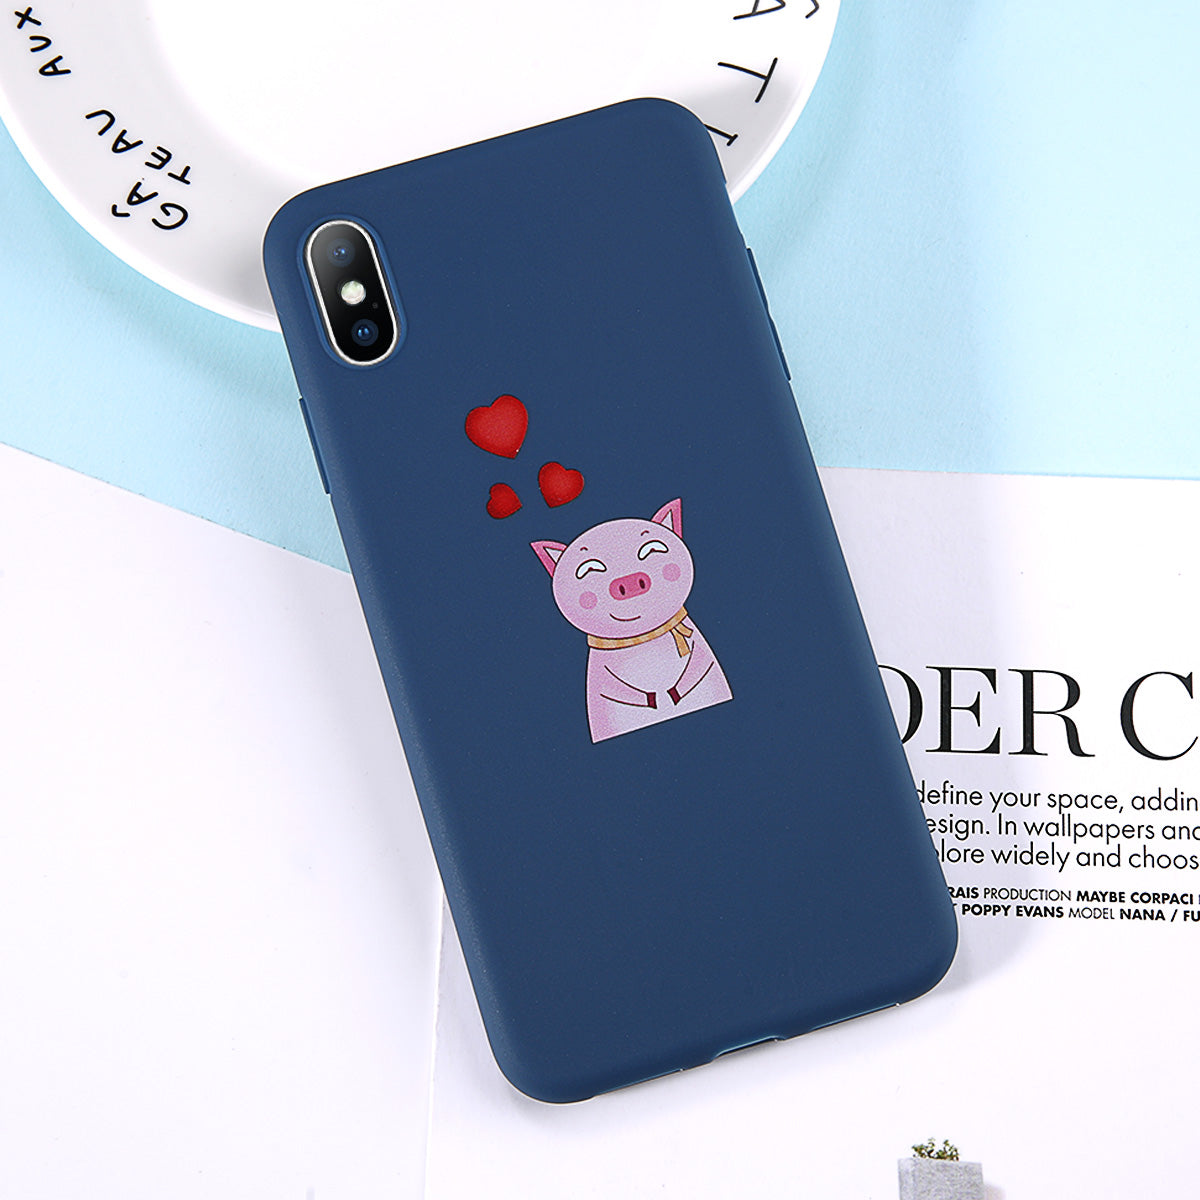 Lovebay Phone Case For Iphone 6 6s 7 8 Plus X Xr Xs Max Fashion Cute Cartoon Animal Dog Pig Soft Tpu For Iphone X Phone Cover